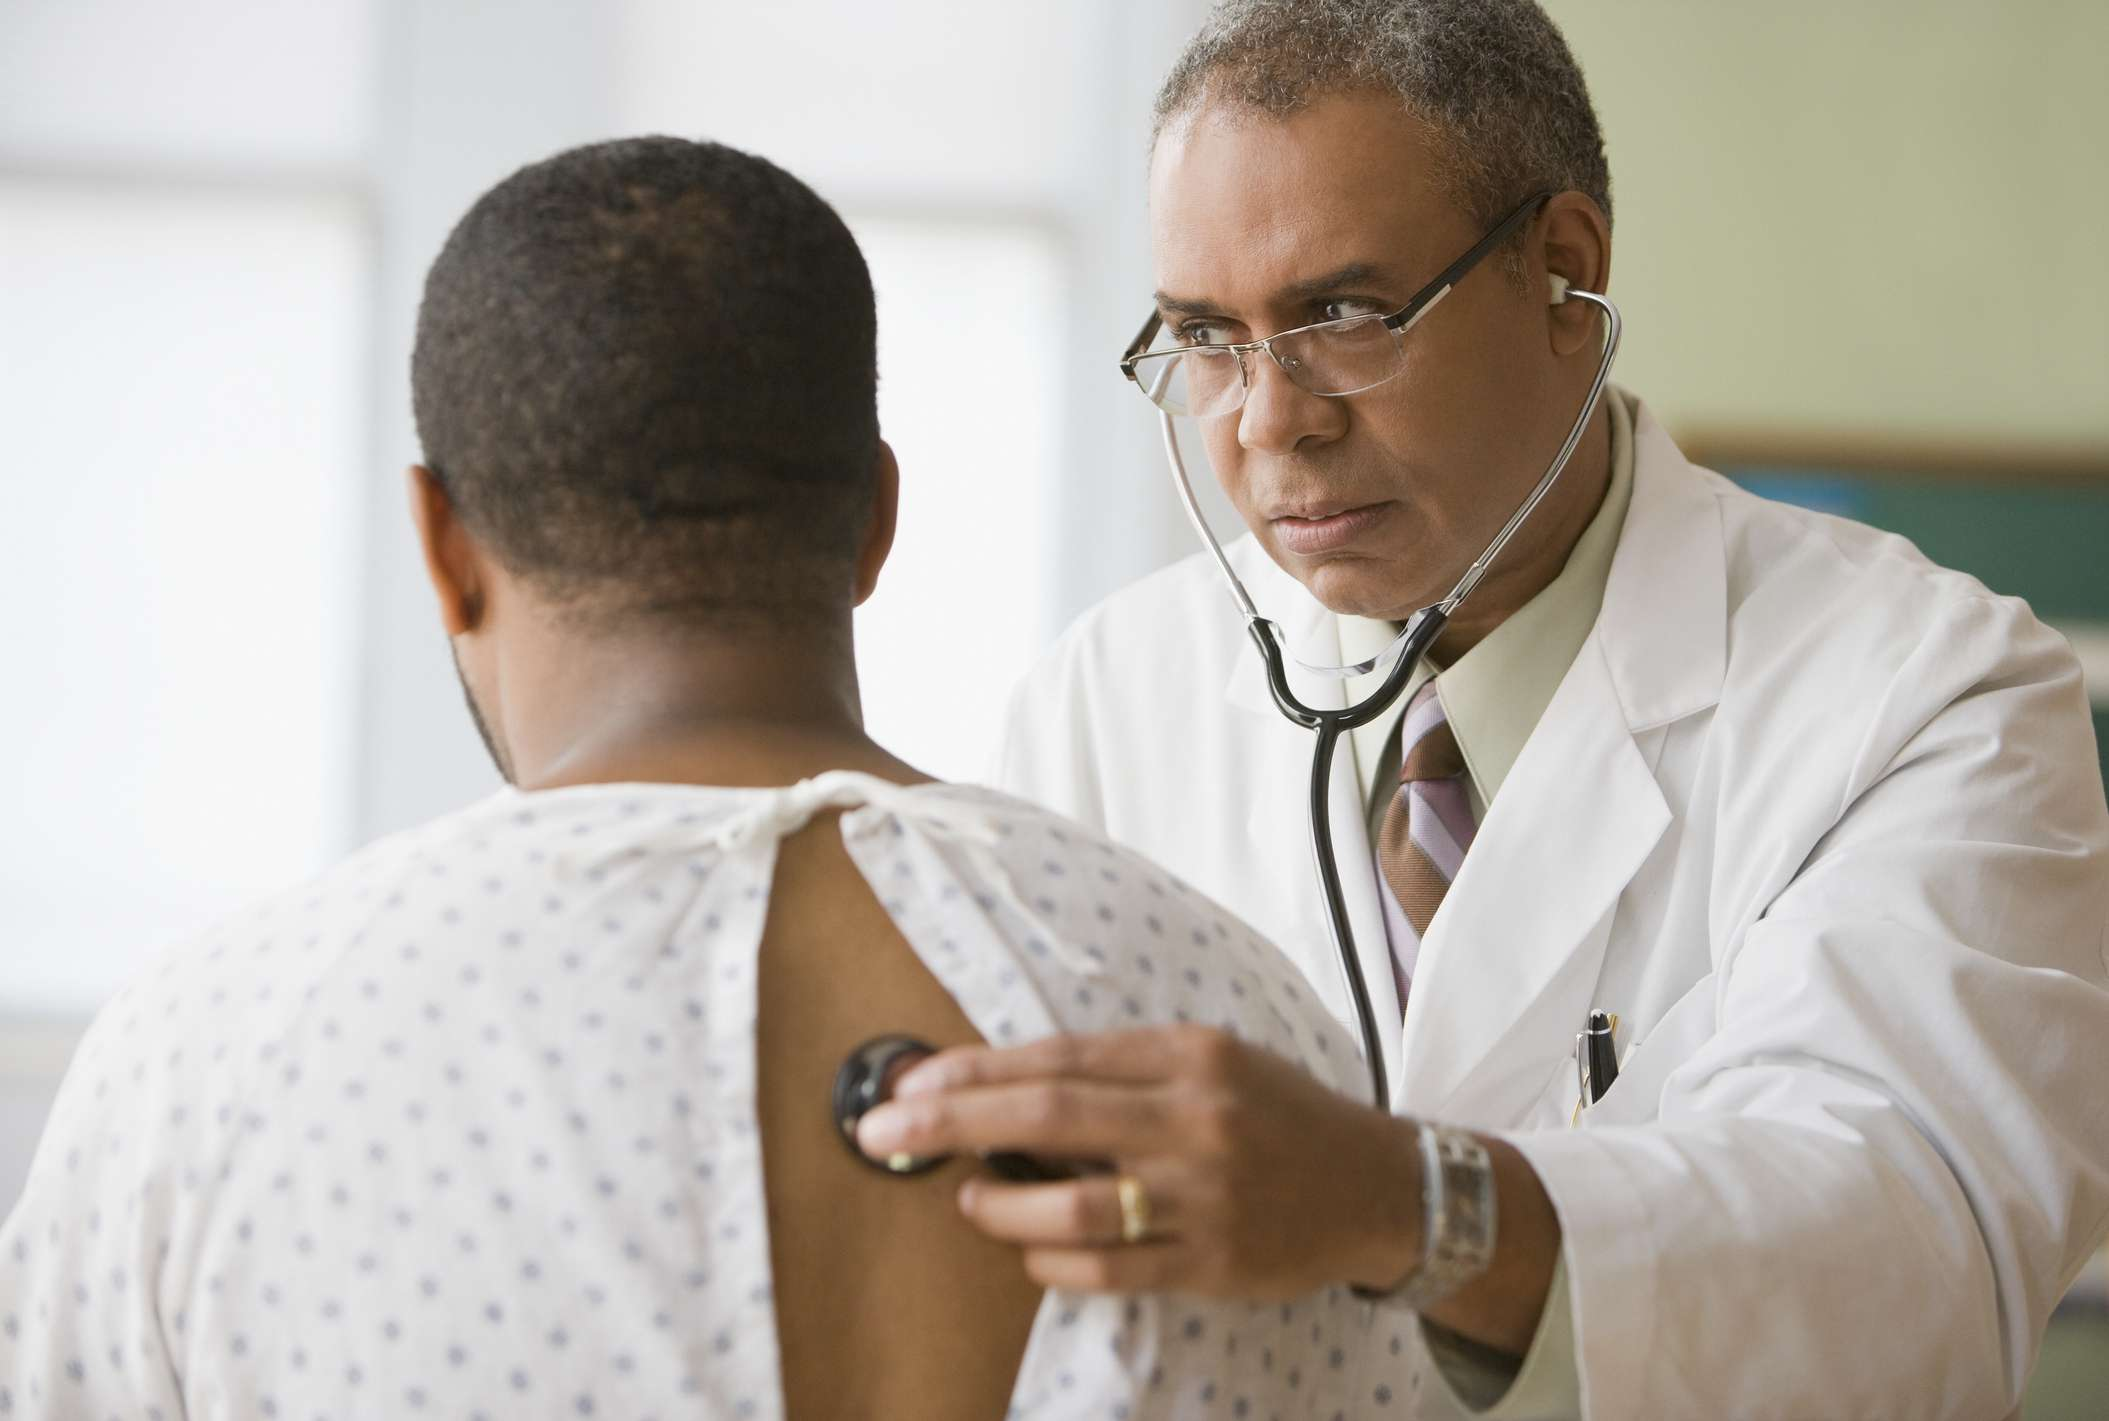 Doctor examining patient's lungs